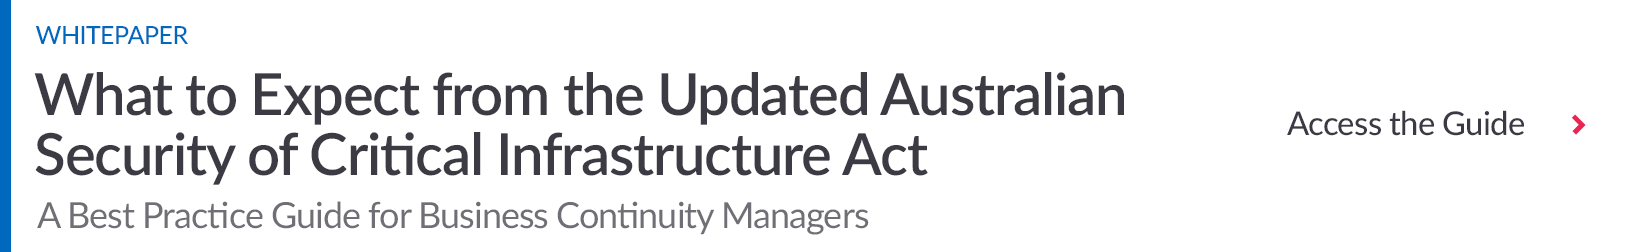 Download the Guide to Understanding Australian Security of Critical Infrastructure Act